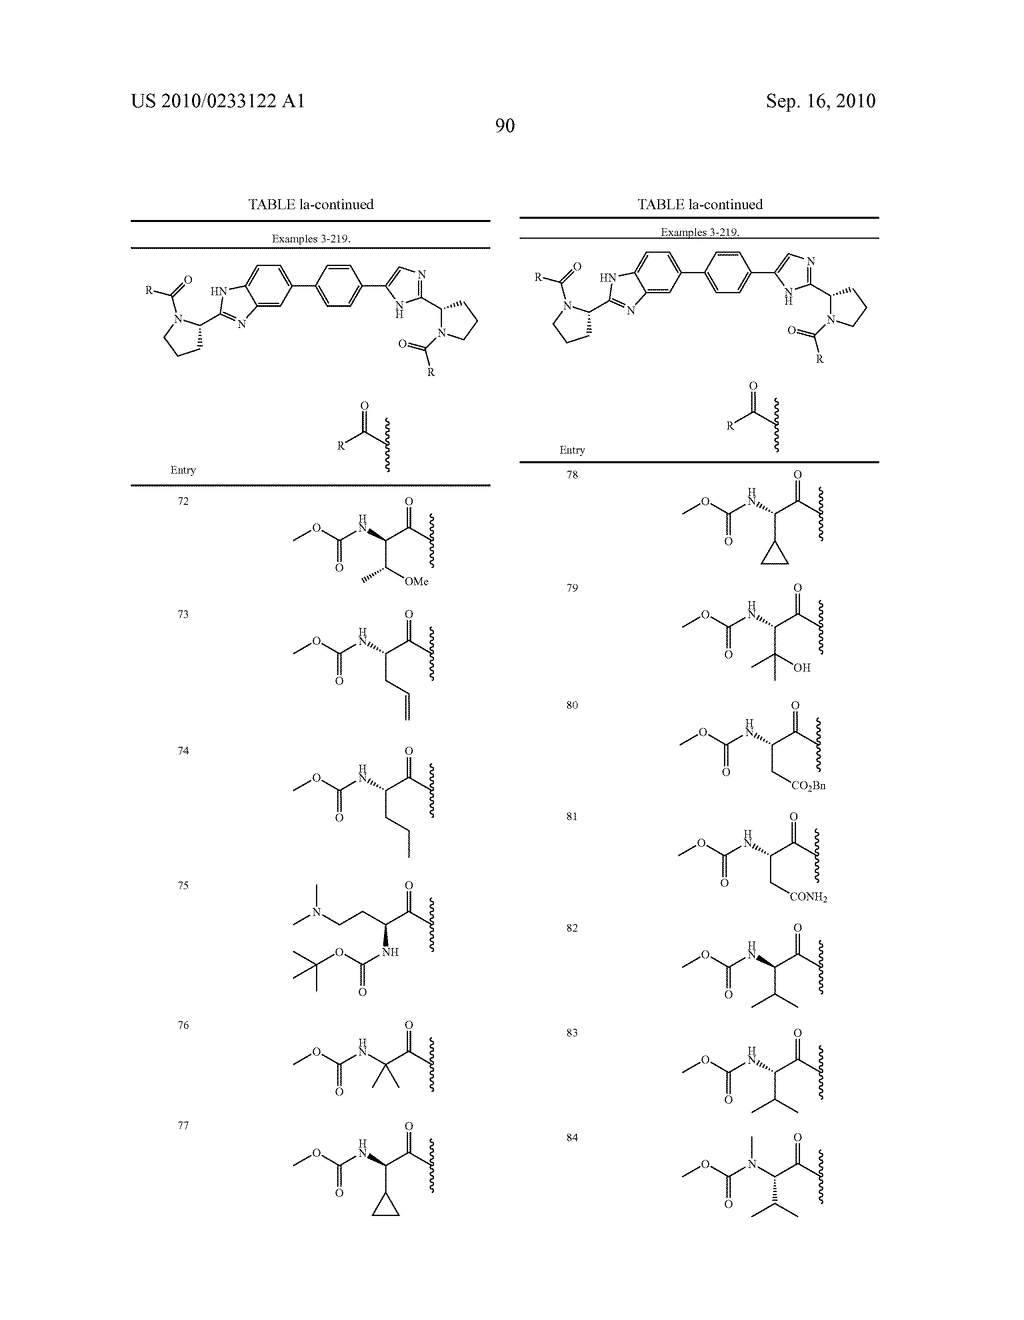 NOVEL BENZIMIDAZOLE DERIVATIVES - diagram, schematic, and image 91